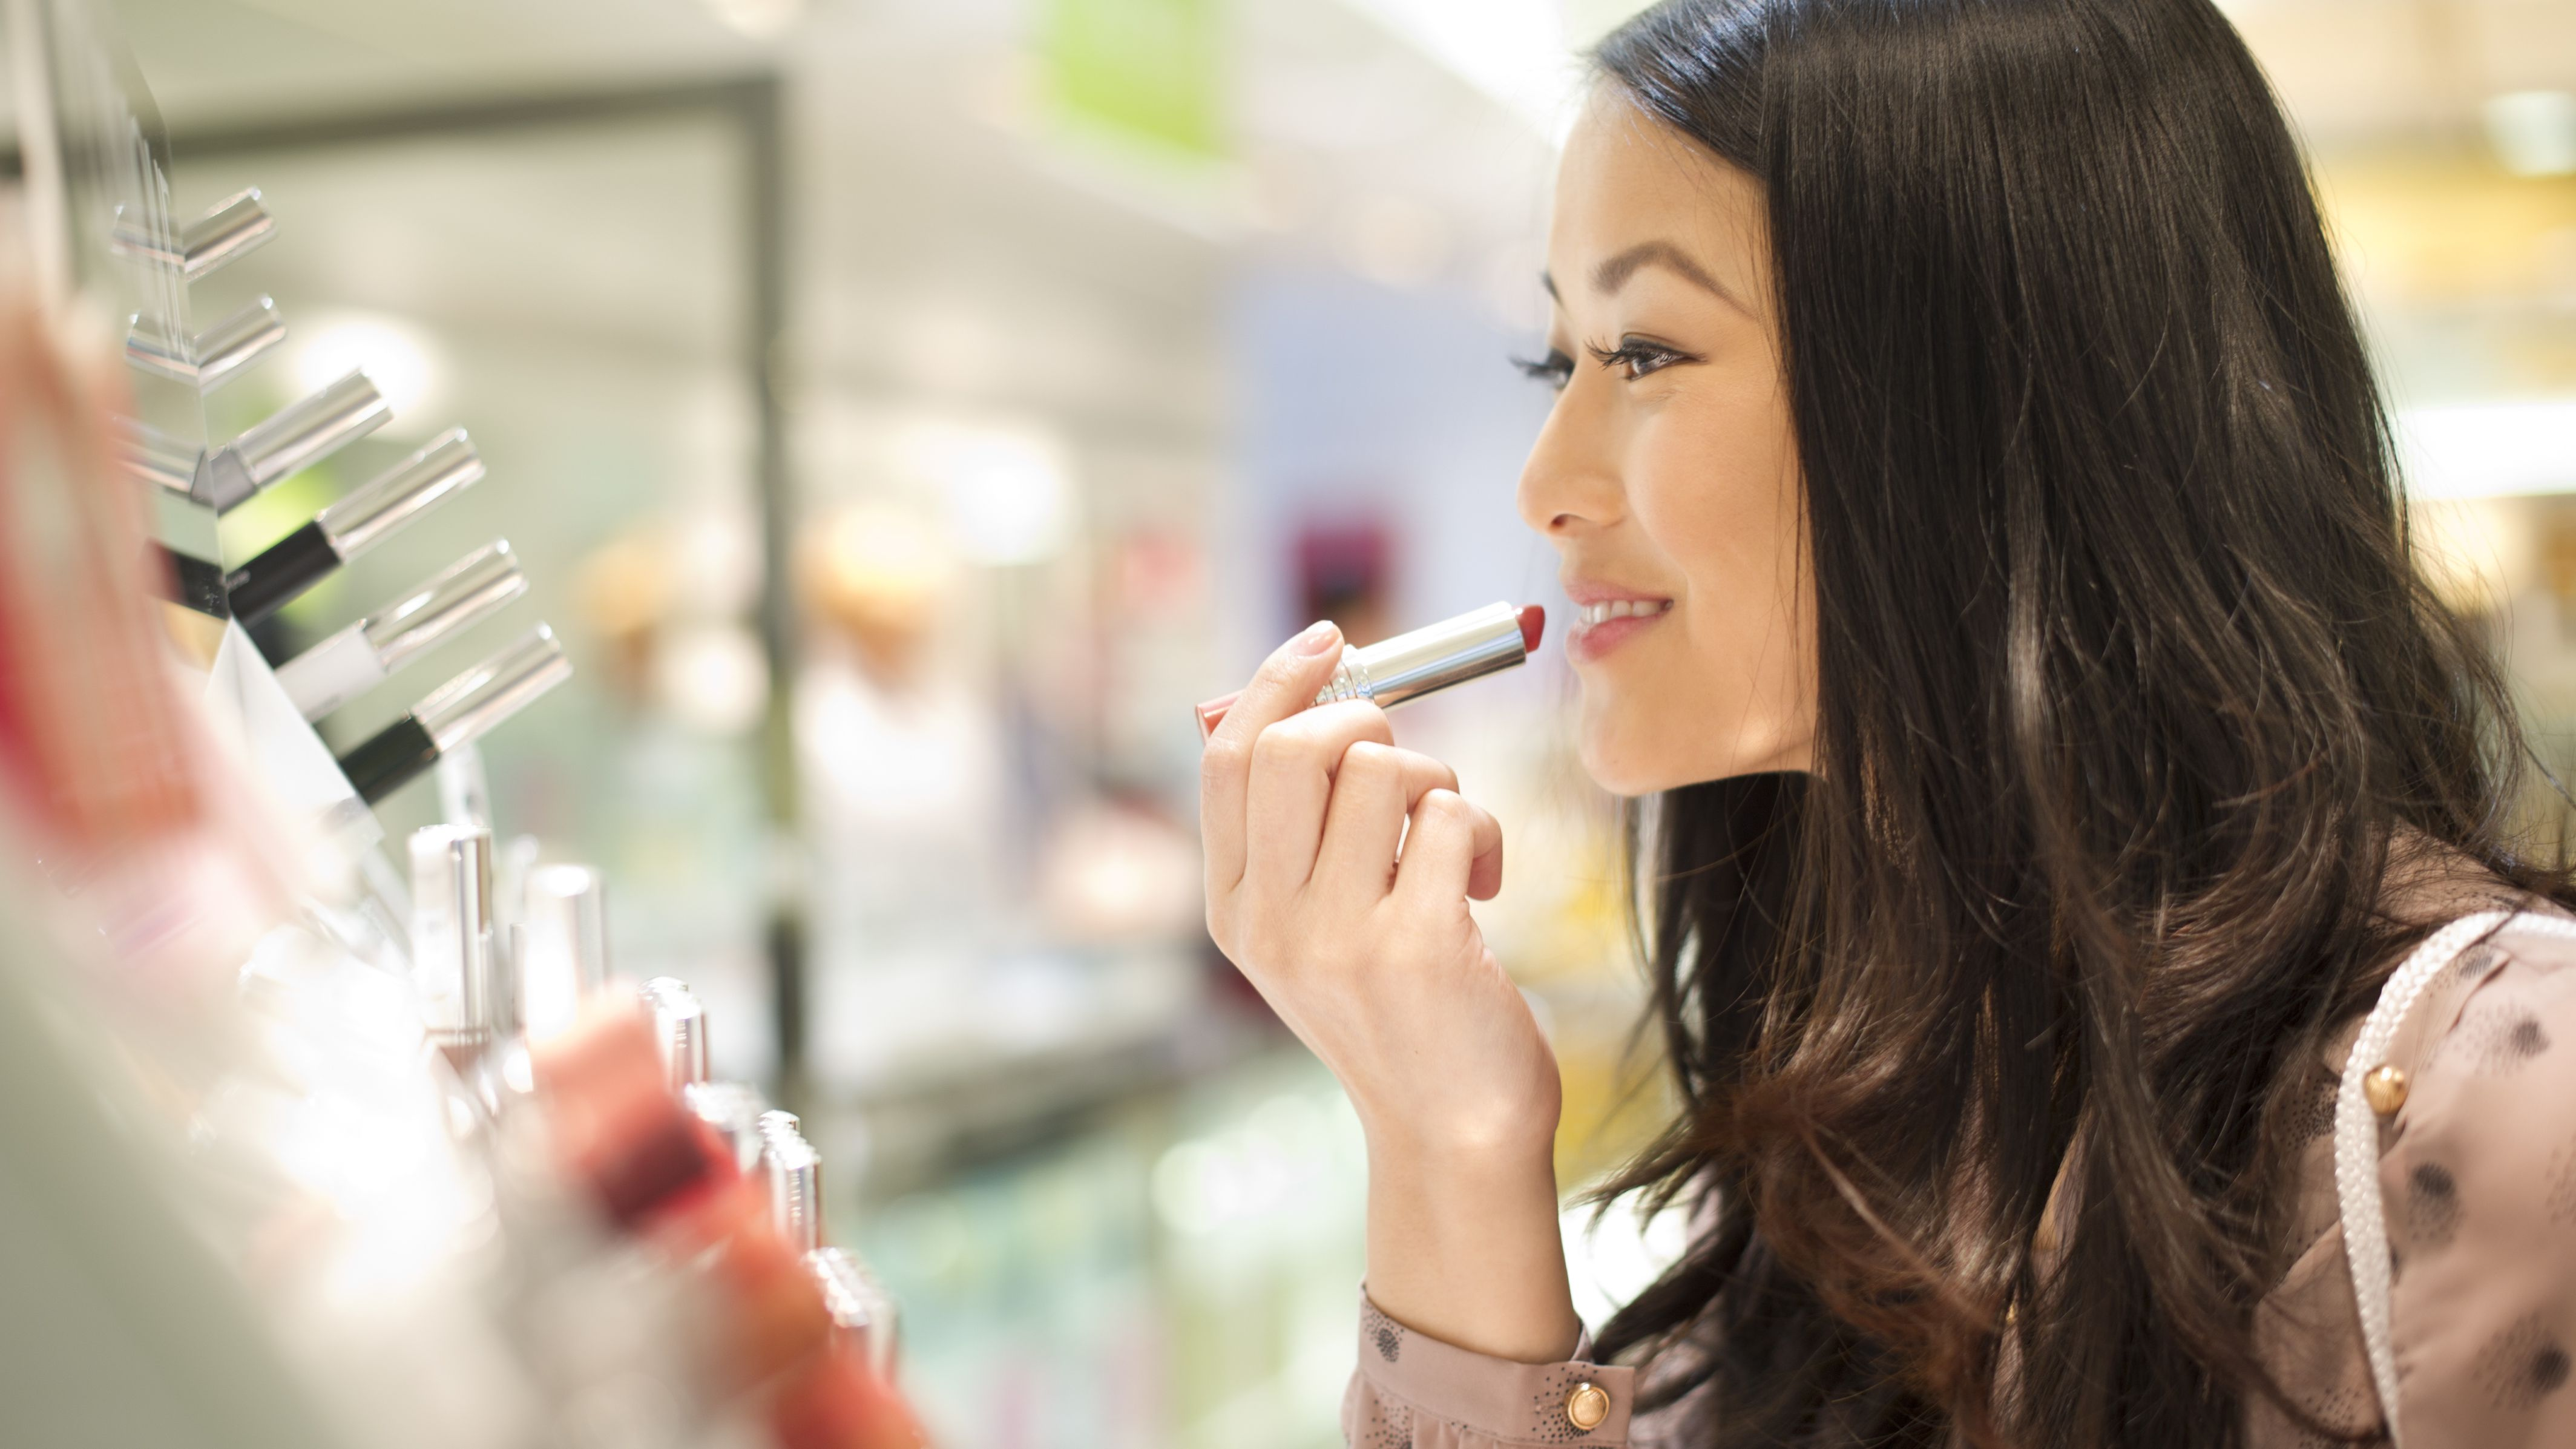 Free Makeup Samples: How to Build Up Your Stash